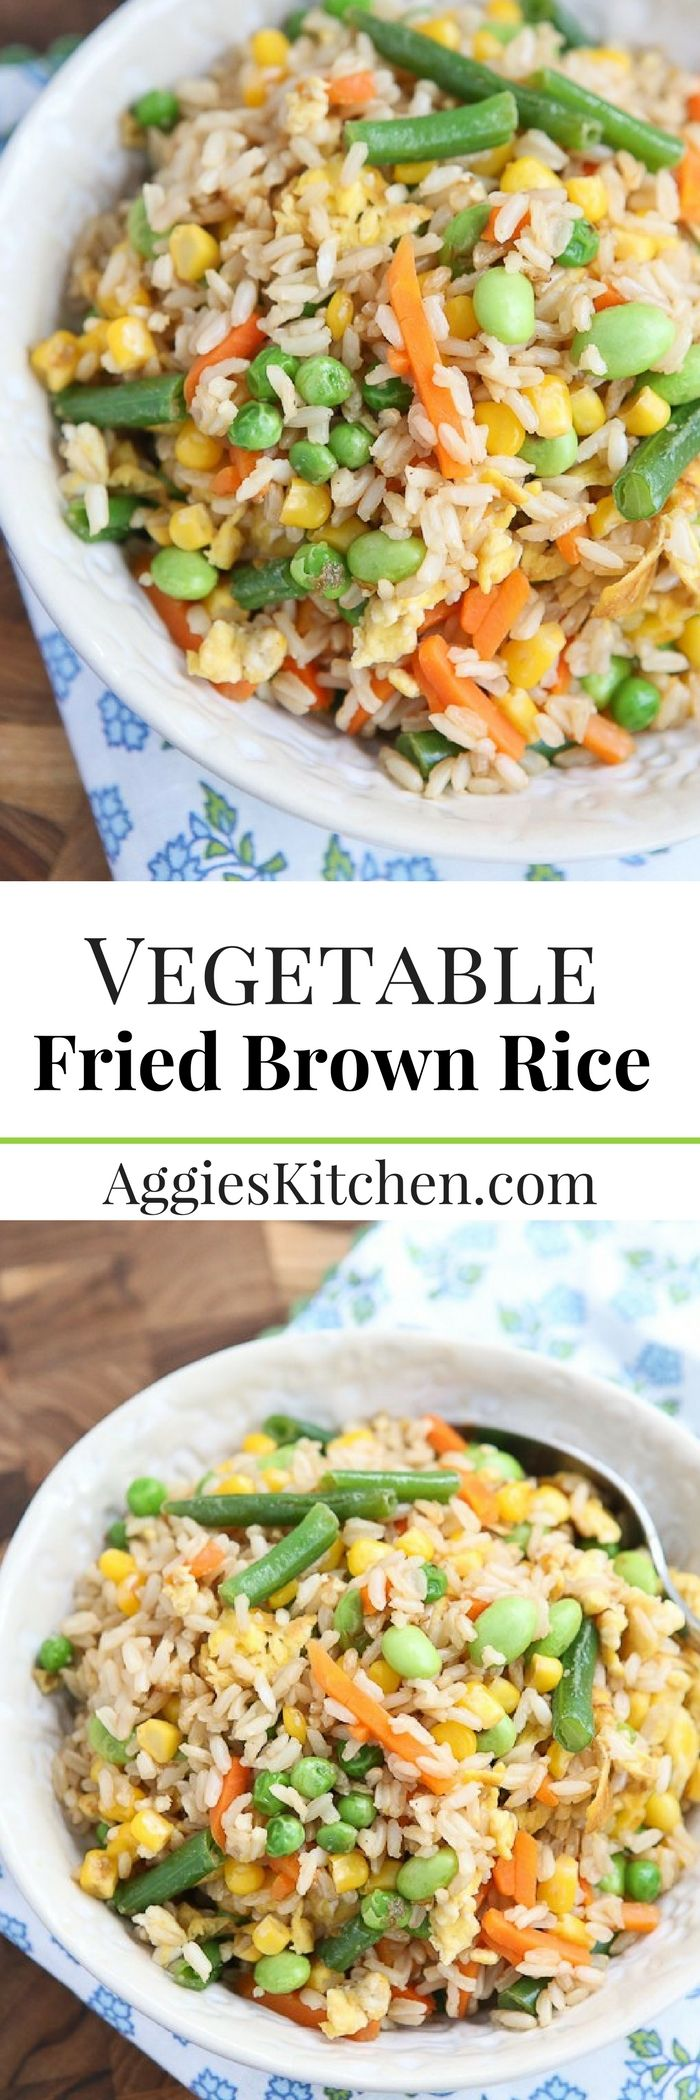 Healthy and quick, this vegetable fried brown rice comes together with just 5 ingredients. Great for meatless Mondays or busy school nights.